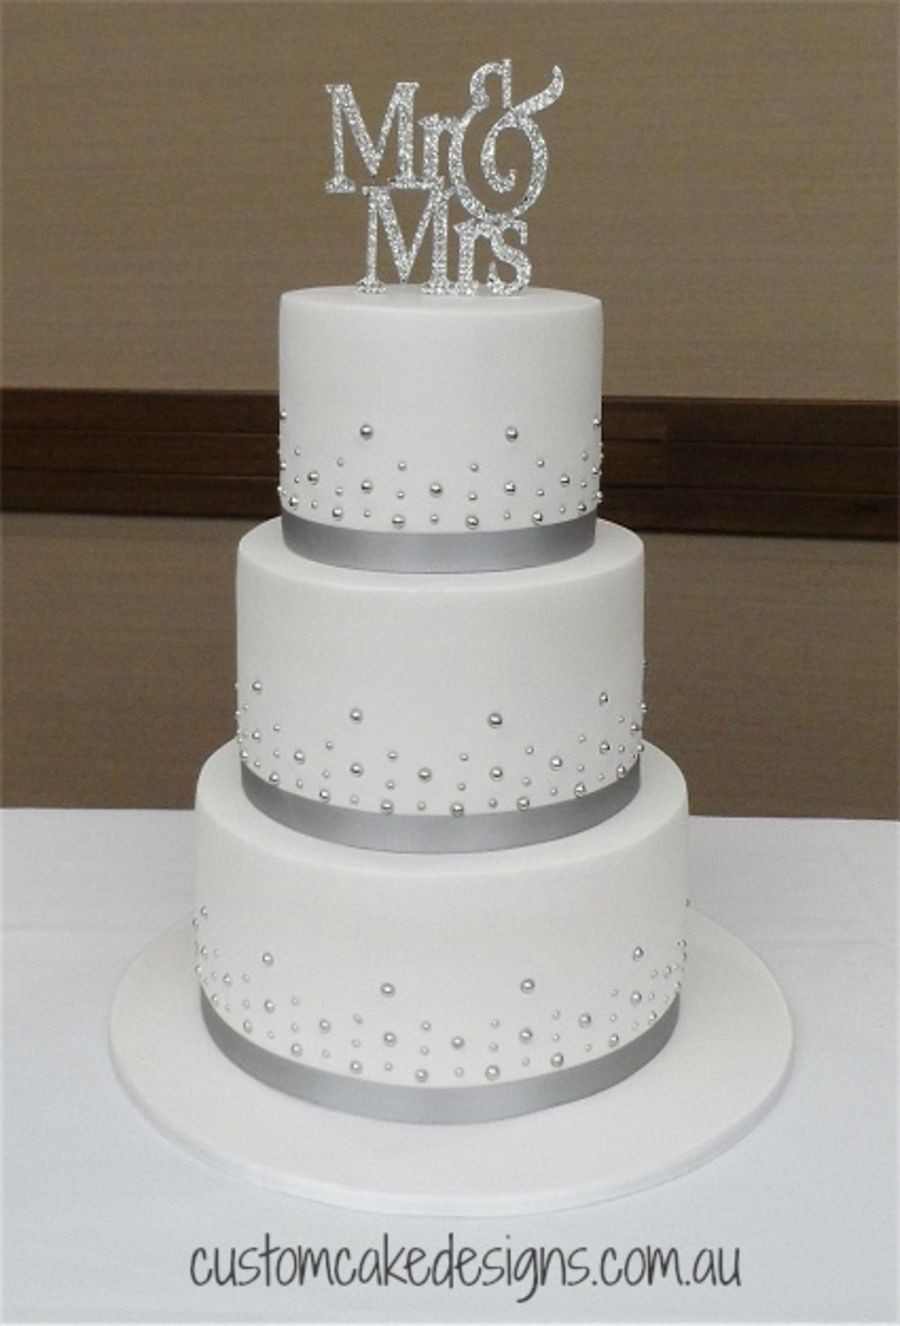 Simple Wedding Cakes Design  This elegant and simple design was chosen by the bride